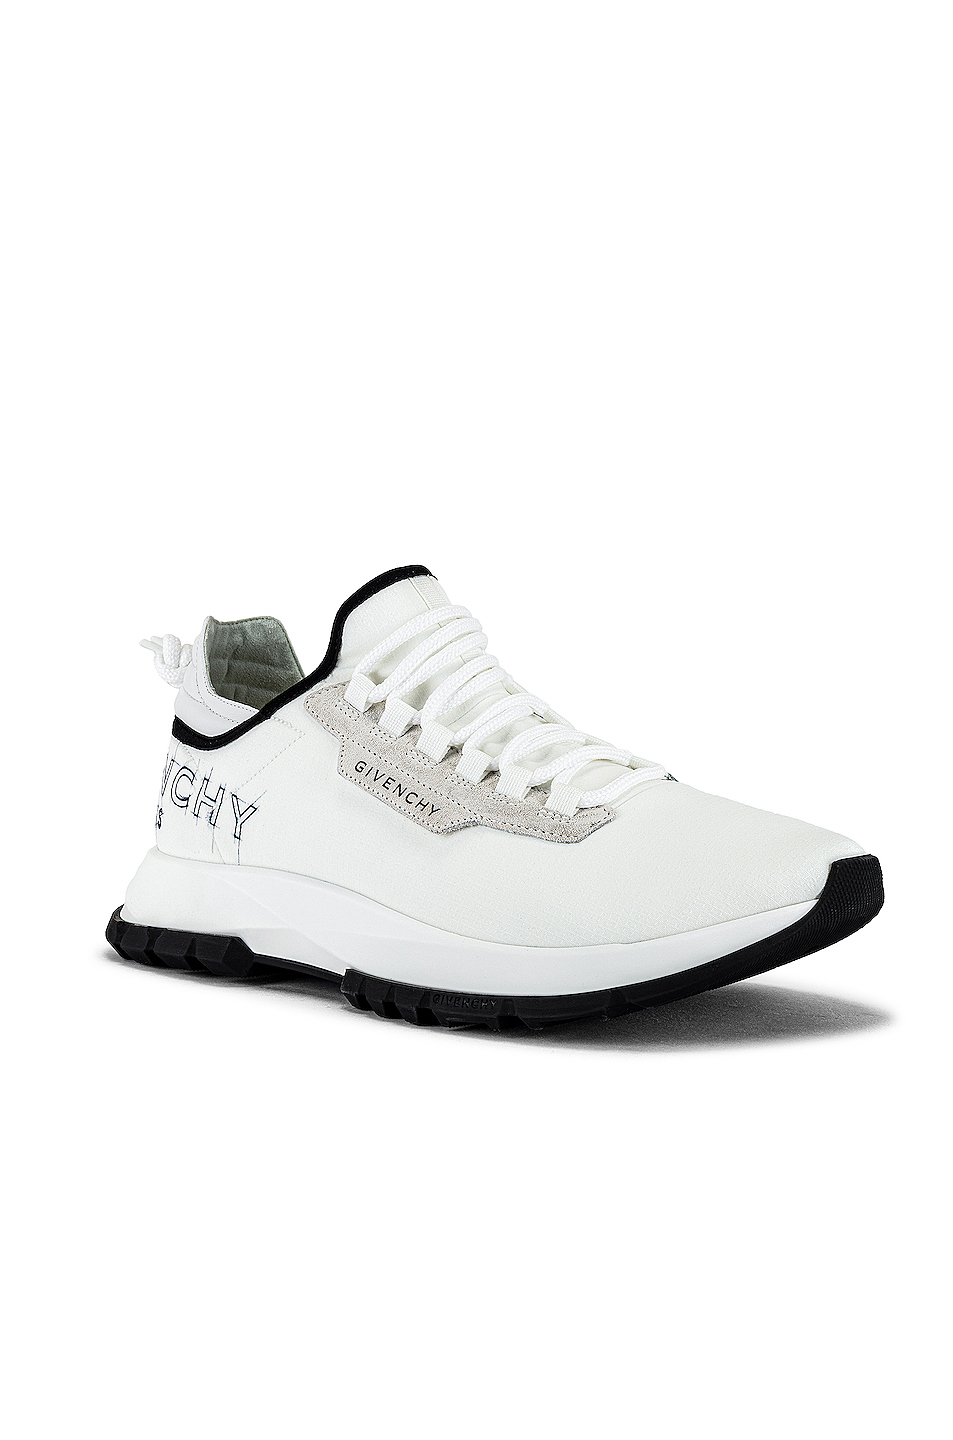 Givenchy Low Top Spectre Runner